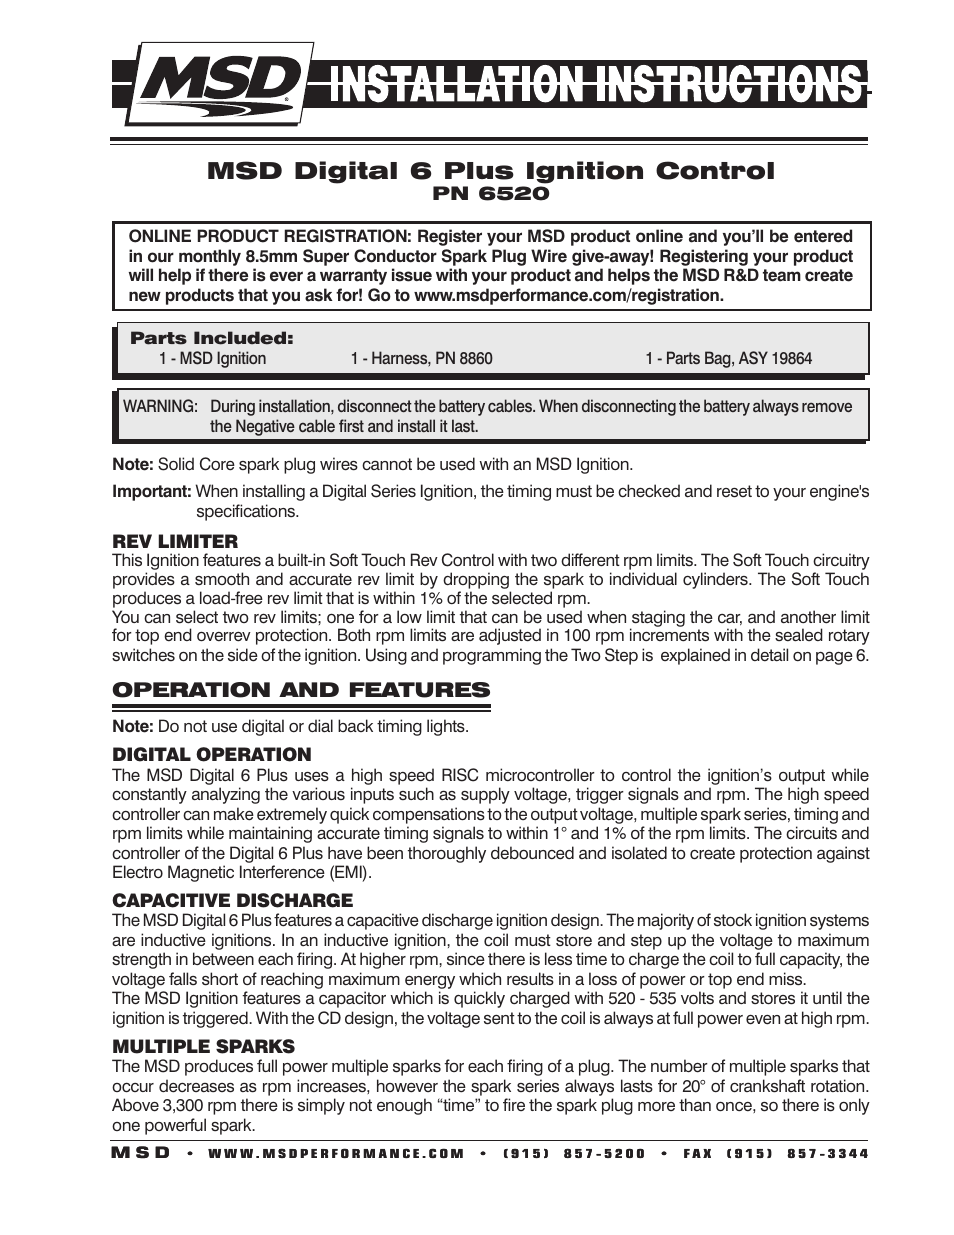 msd 6520 digital 6 plus ignition control installation page1?resize\\\\\\\\\\\\\\\\\\\\\\\\\\\=665%2C861 msd street fire ignition wiring diagram chevy wiring diagrams MSD 6A Wiring-Diagram at soozxer.org